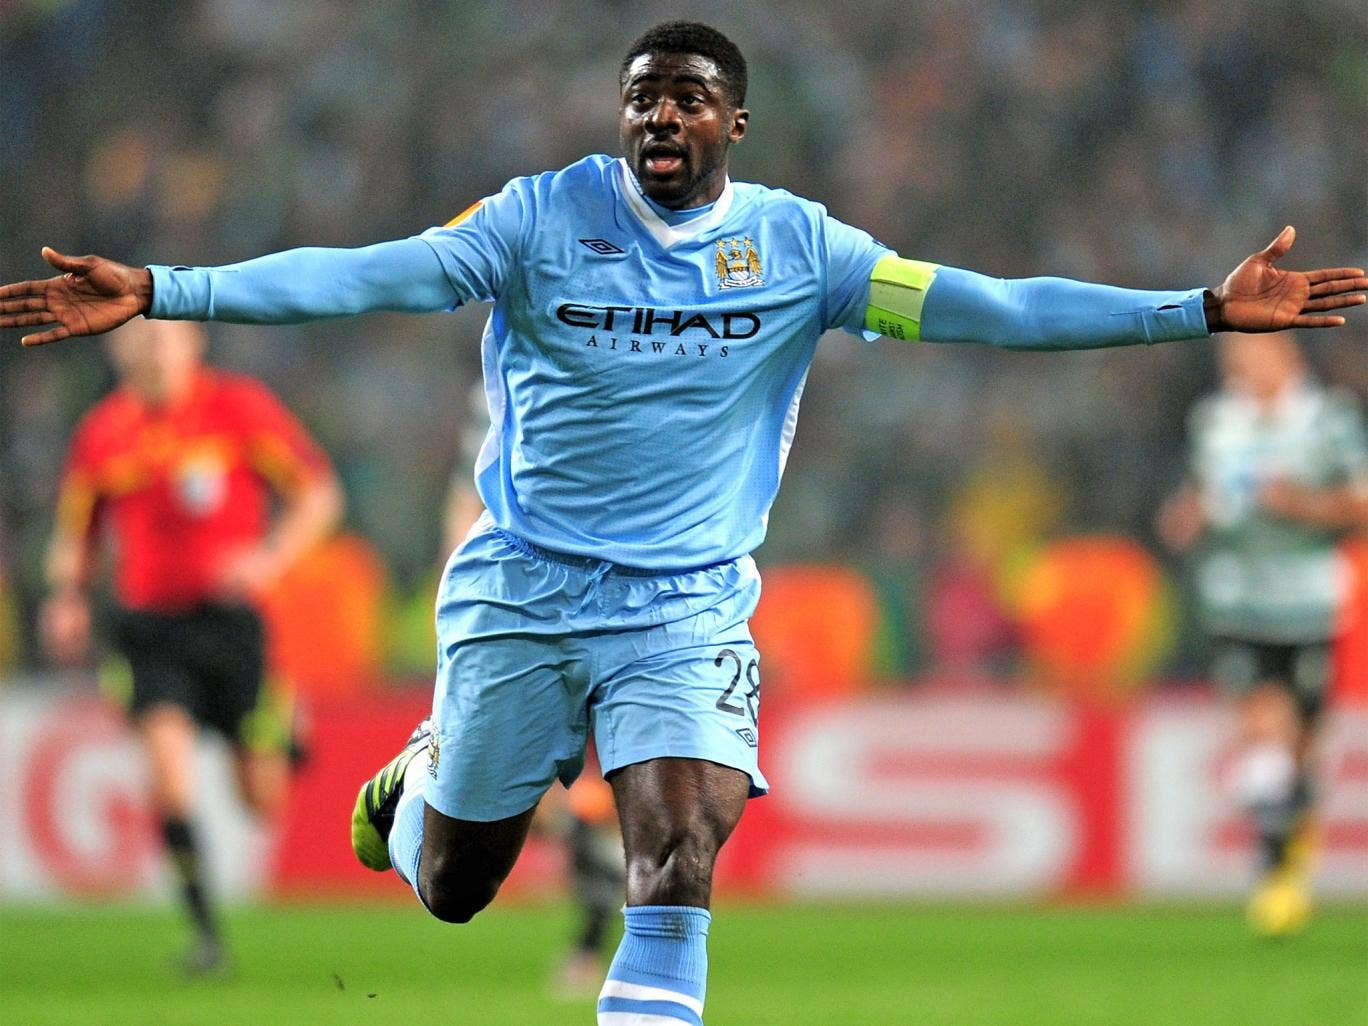 Kolo Touré has been at City since 2009